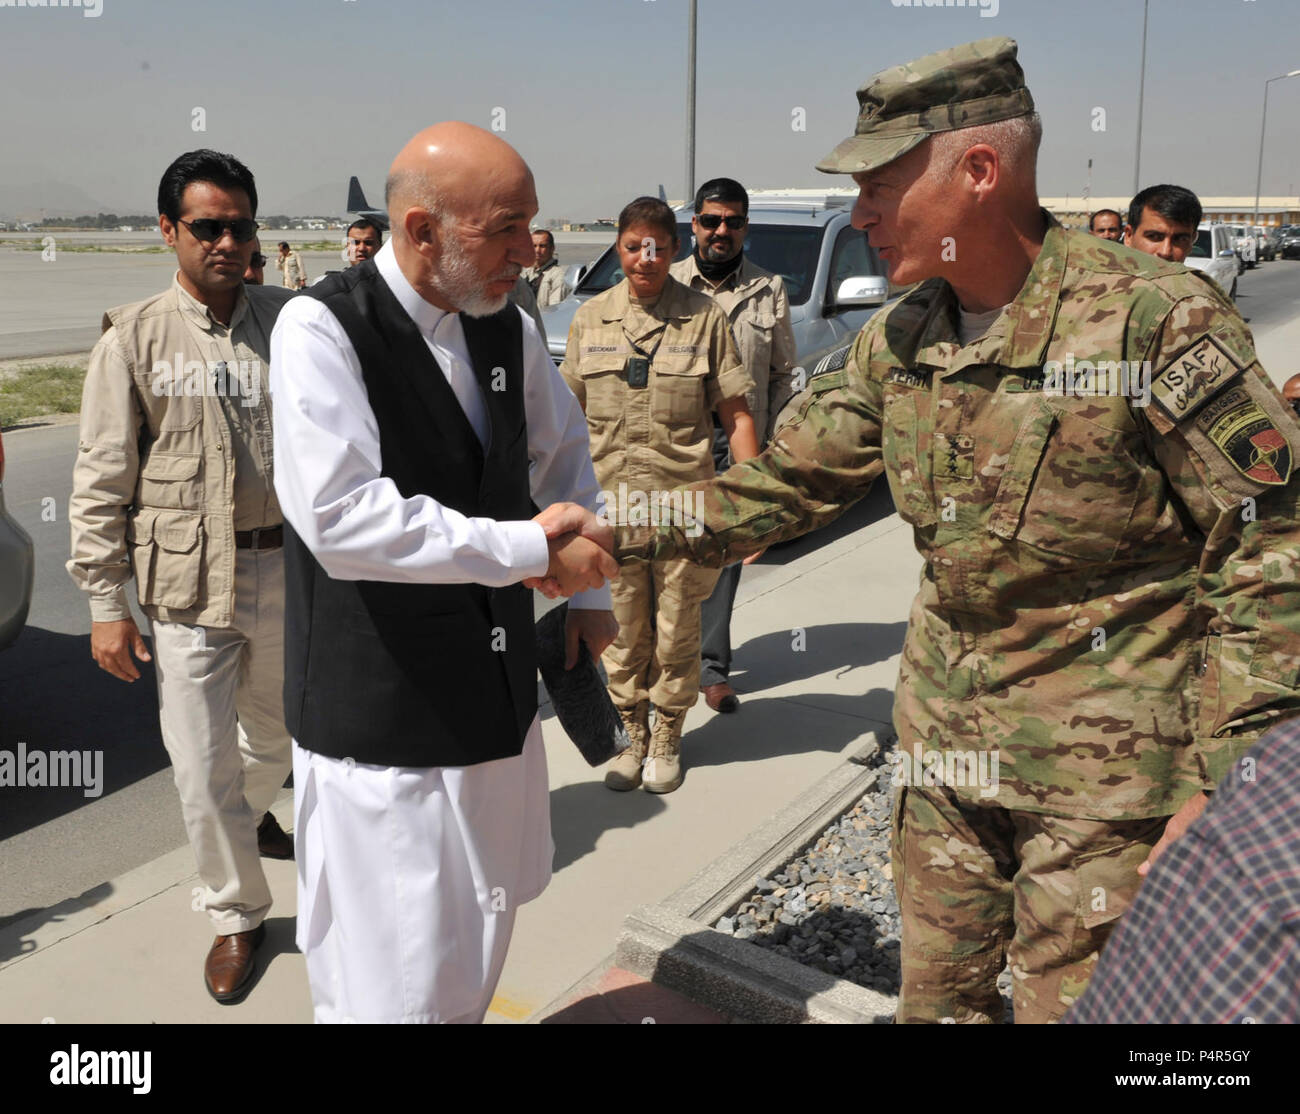 U.S. Army Lt. Gen. James L. Terry, right, the commander of the International Security Assistance Force Joint Command, greets Afghan President Hamid Karzai on the flight line at Kabul International Airport in Kabul province, Afghanistan, Aug. 21, 2012. Stock Photo